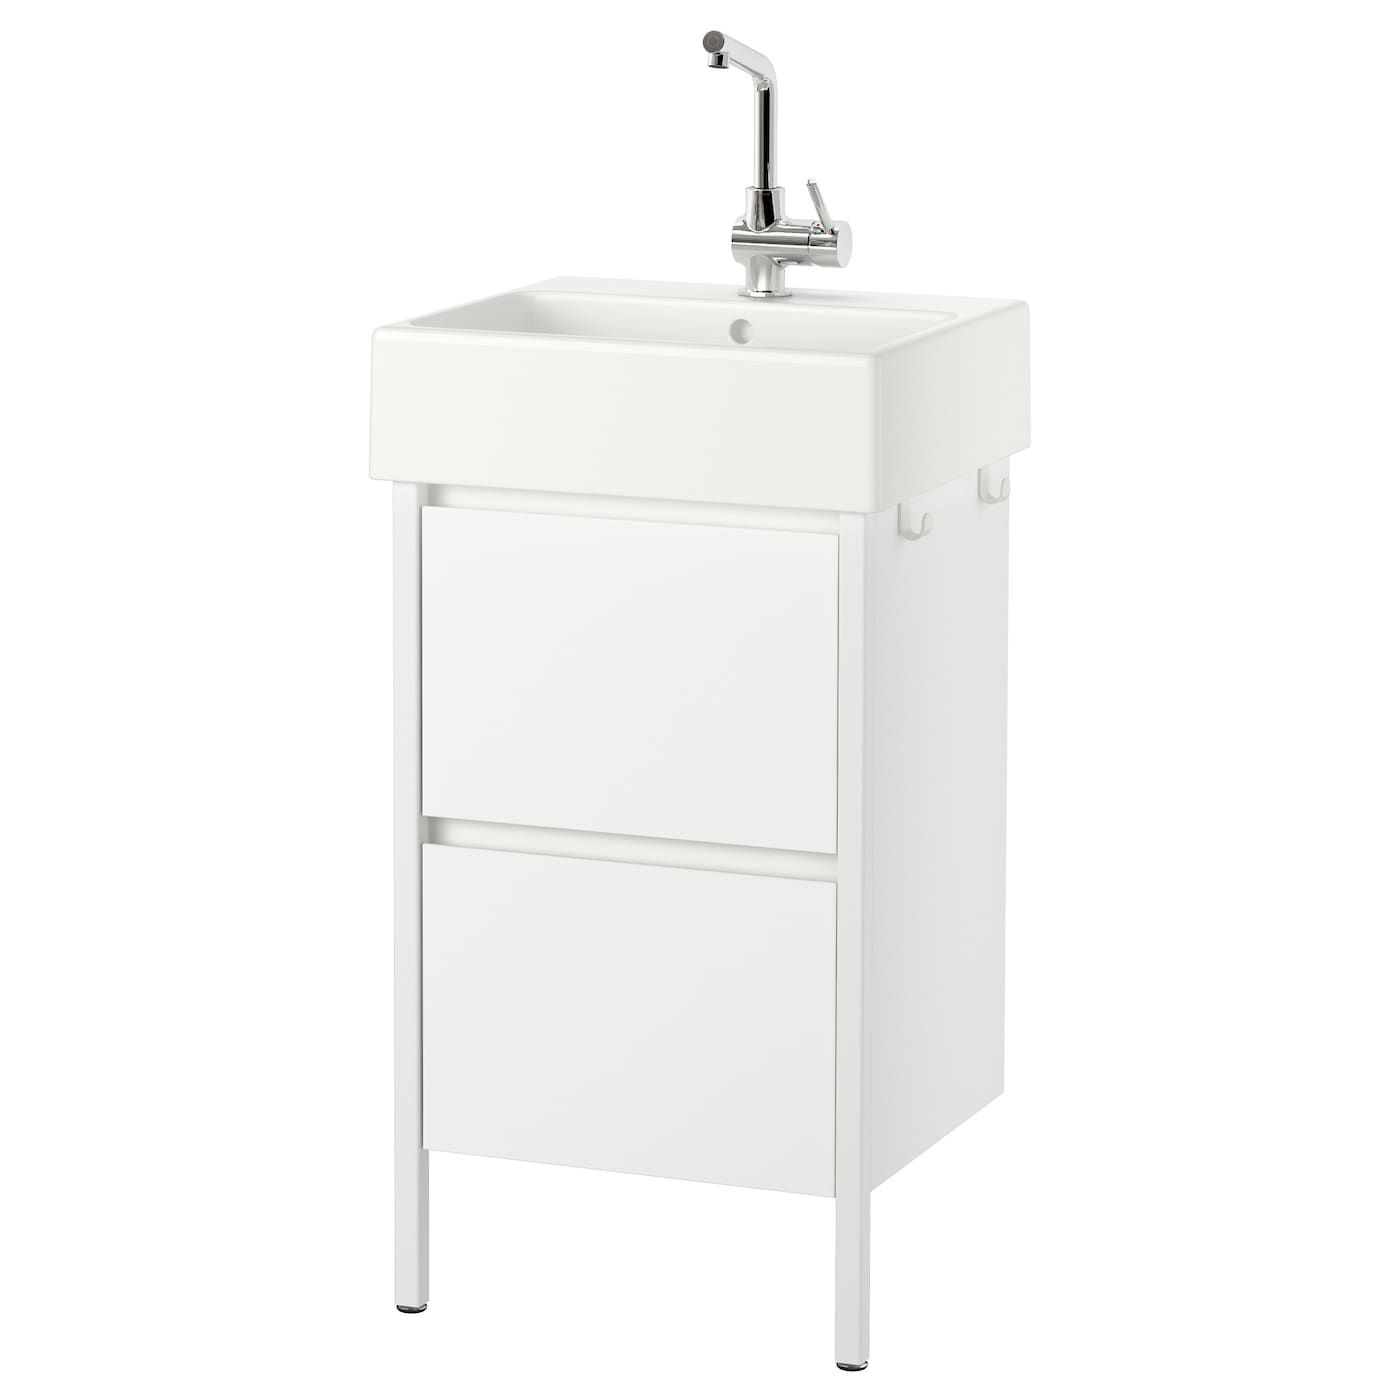 yddingen meuble lavabo 2tir blanc 49x90 cm ikea. Black Bedroom Furniture Sets. Home Design Ideas